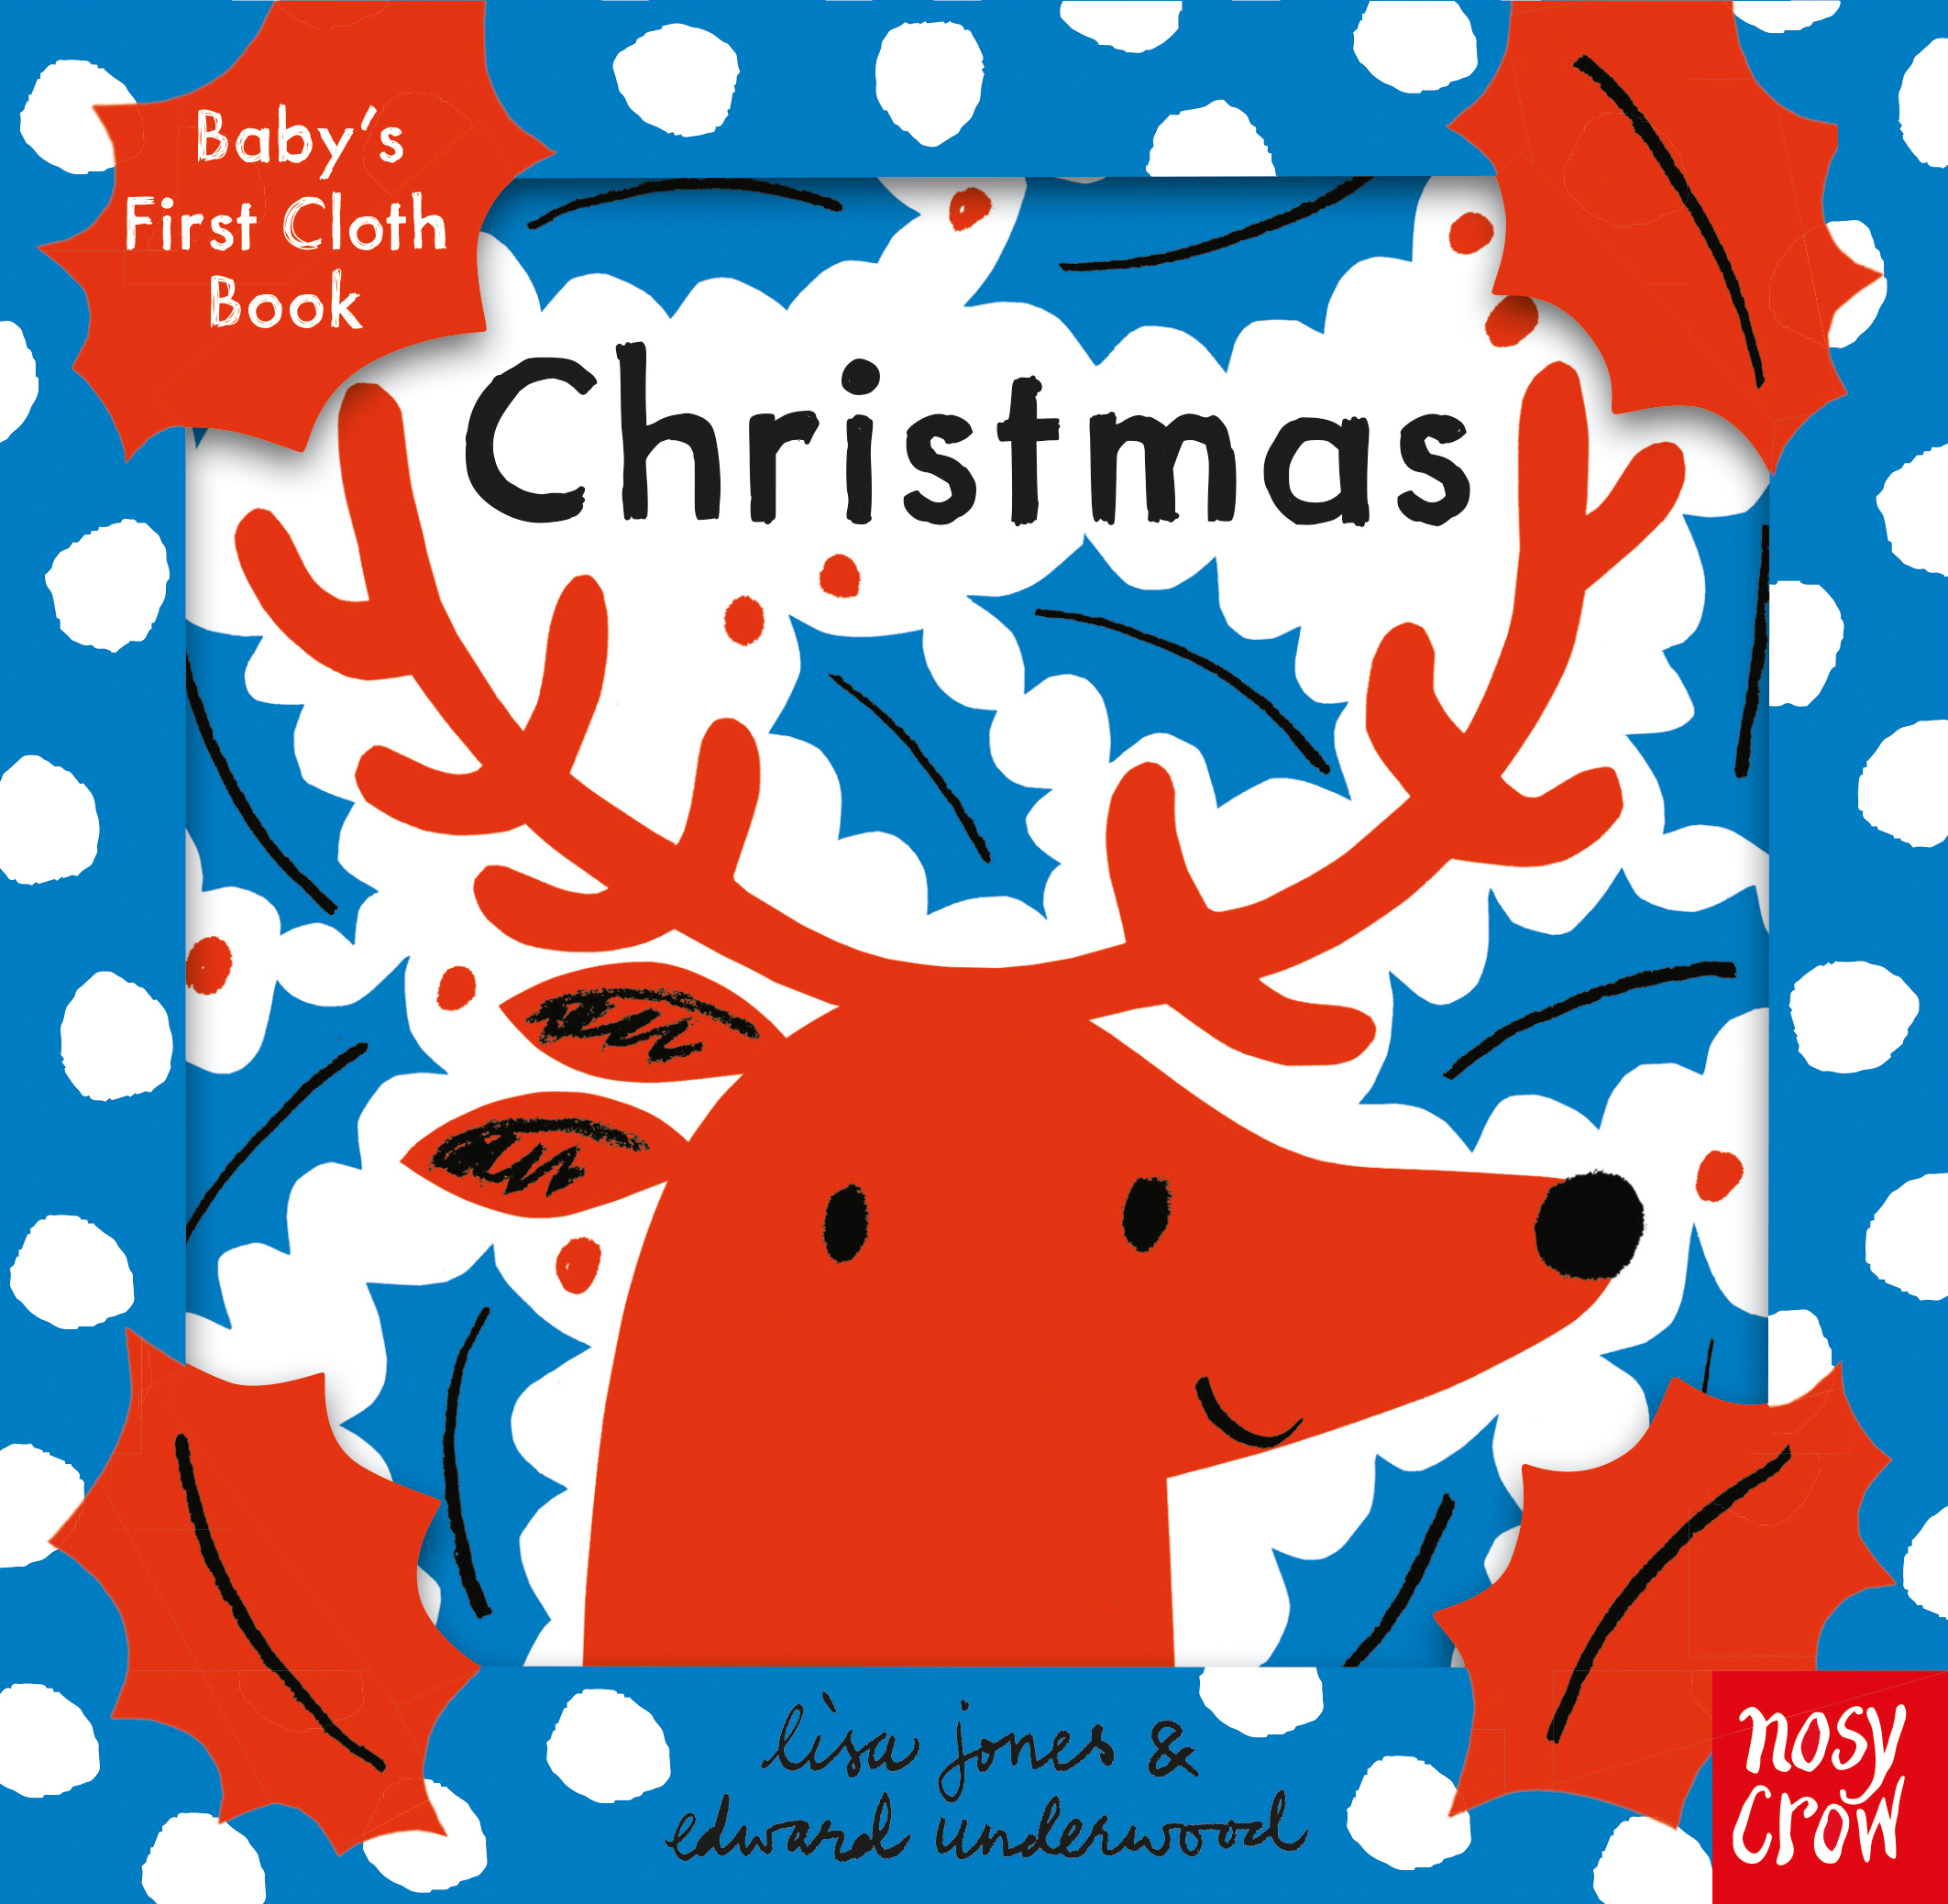 »BABY'S FIRST CLOTH BOOK:  CHRISTMAS« — NOSY CROW